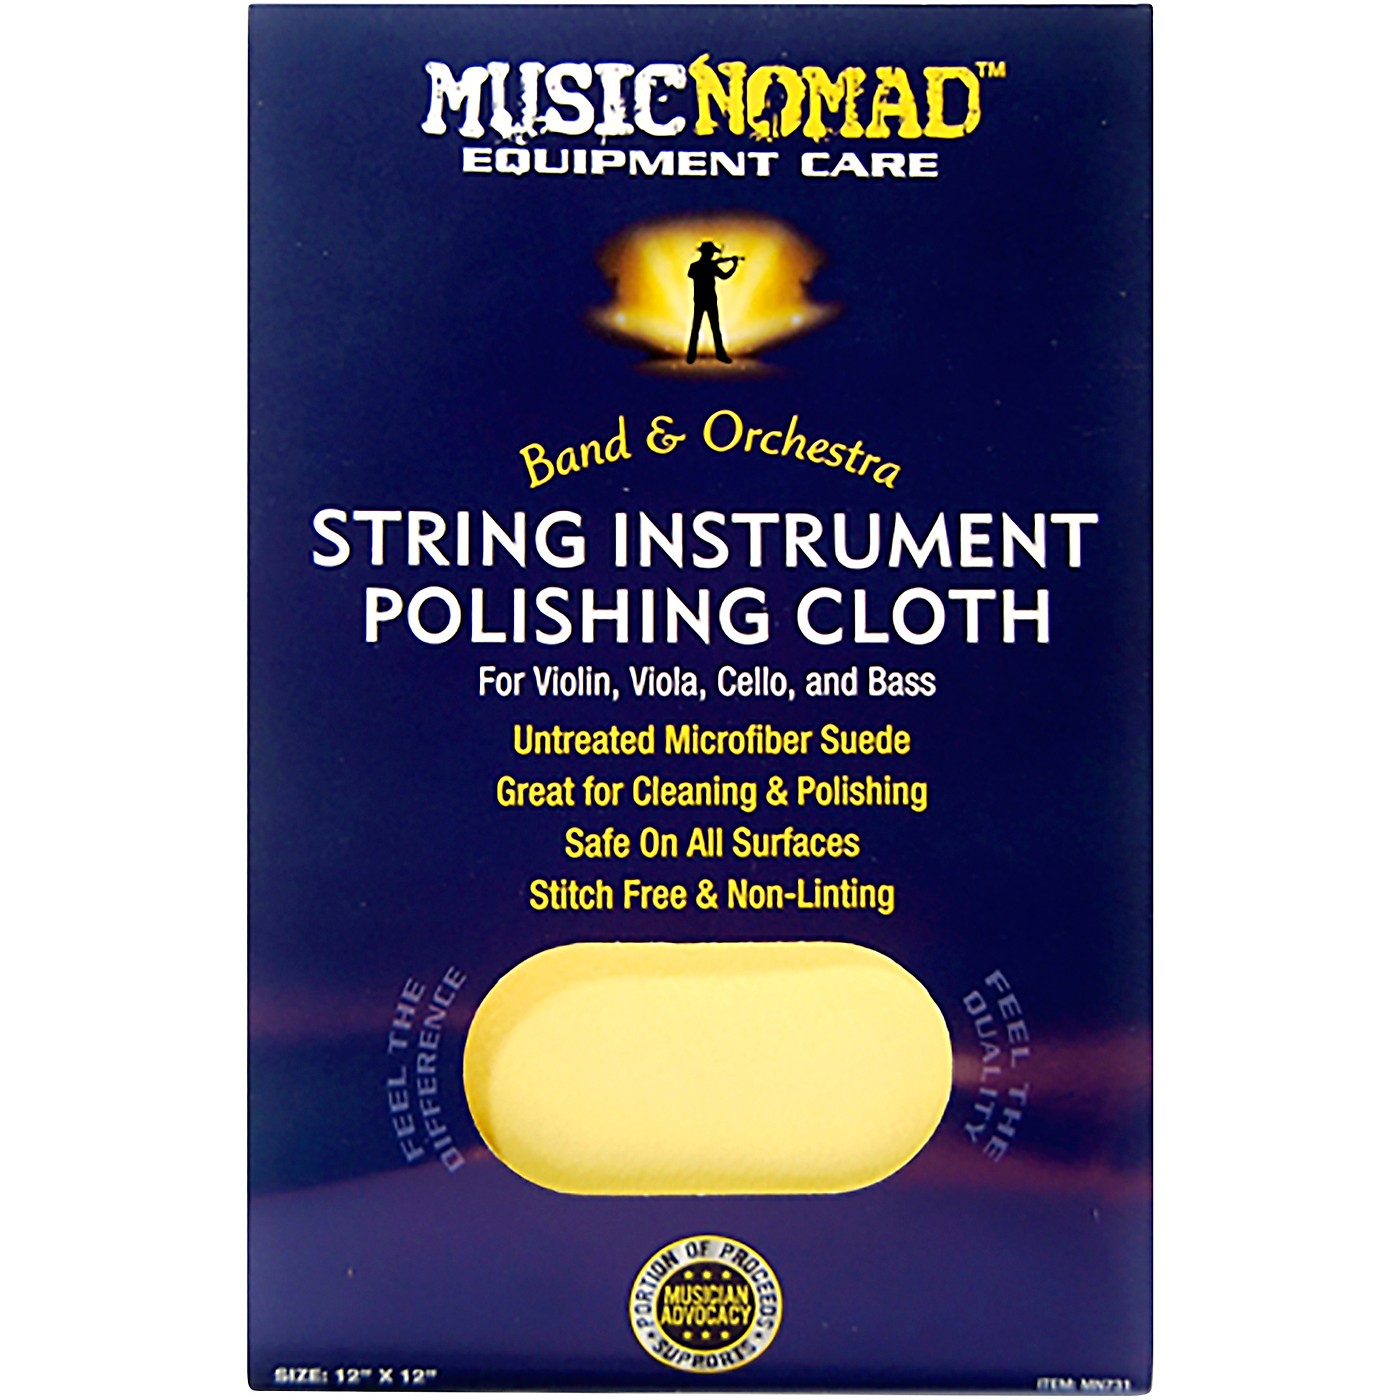 Music Nomad String Instrument Microfiber Polishing Cloth for Violin, Viola, Cello & Bass thumbnail